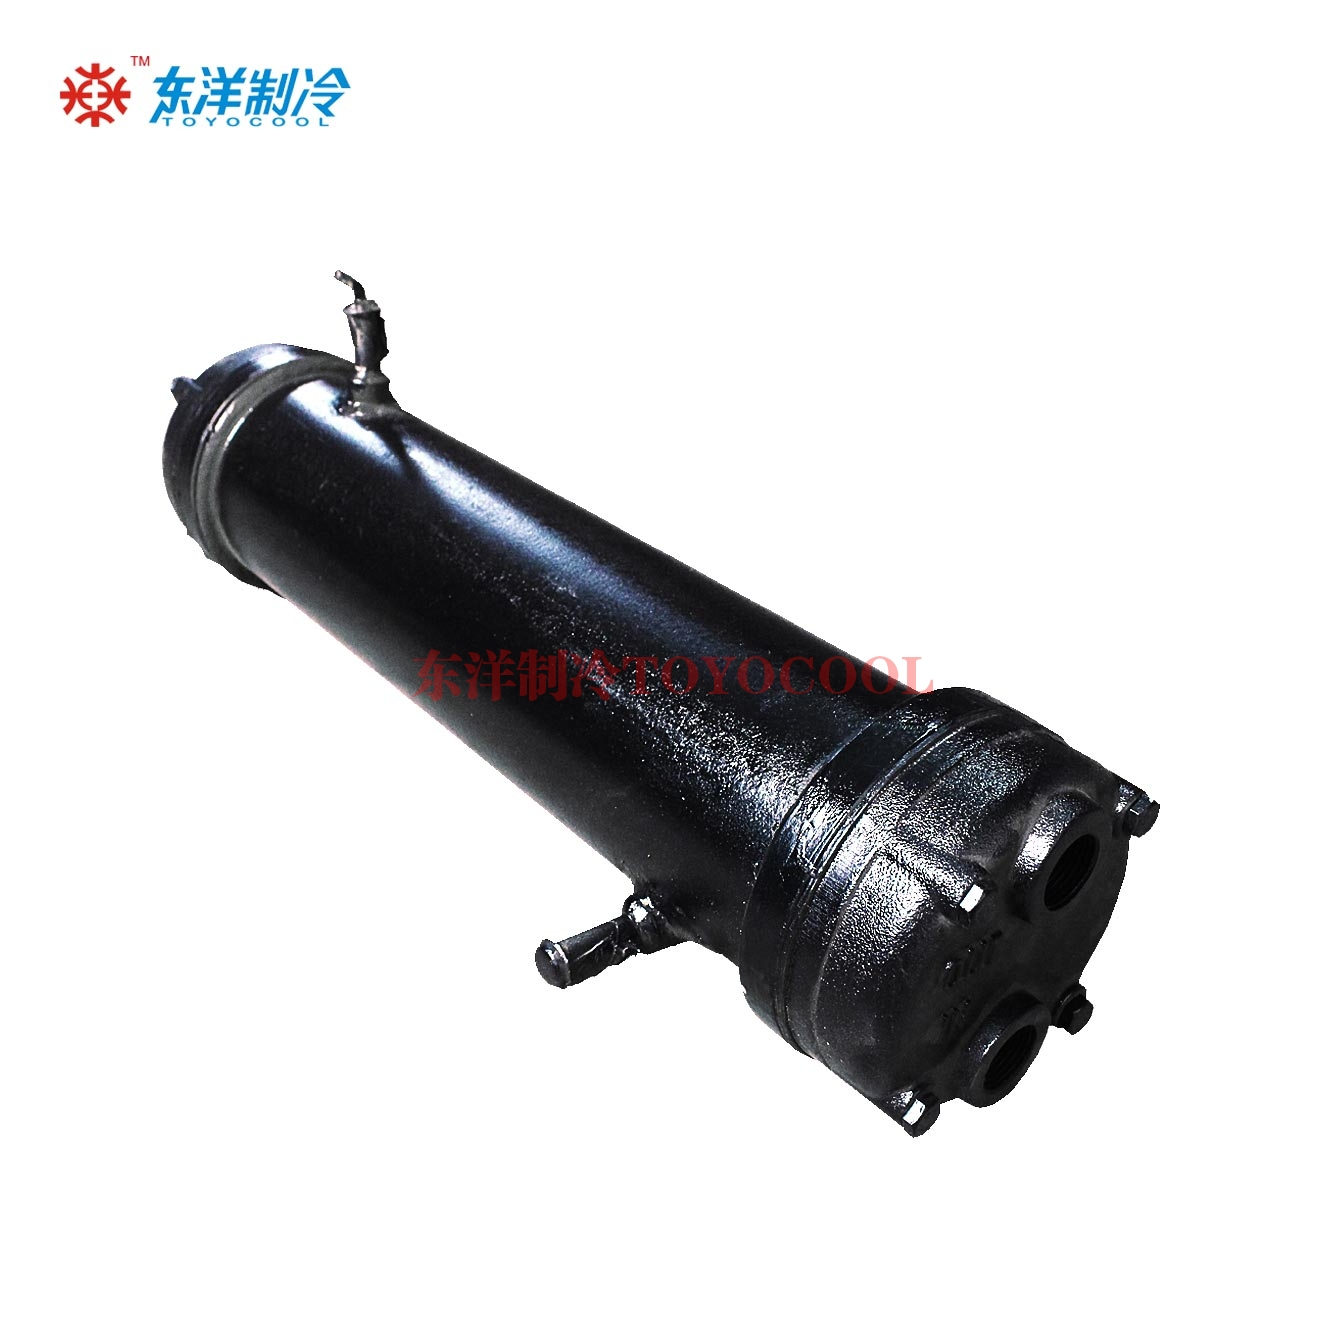 http://www.tychiller.com/data/images/product/20180703154849_208.jpg